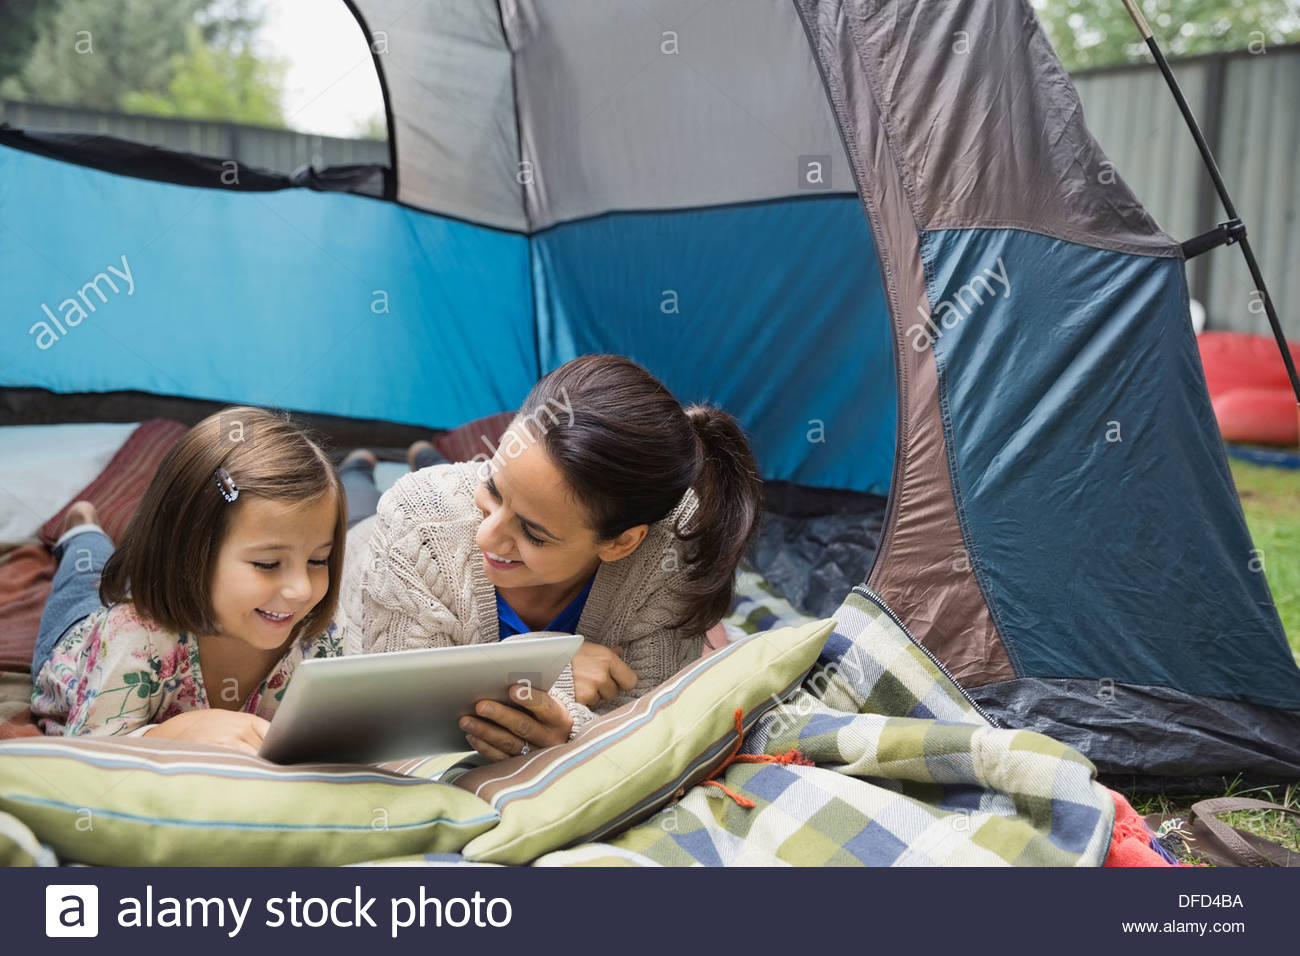 Mother and daughter using digital tablet in tent - Stock Image